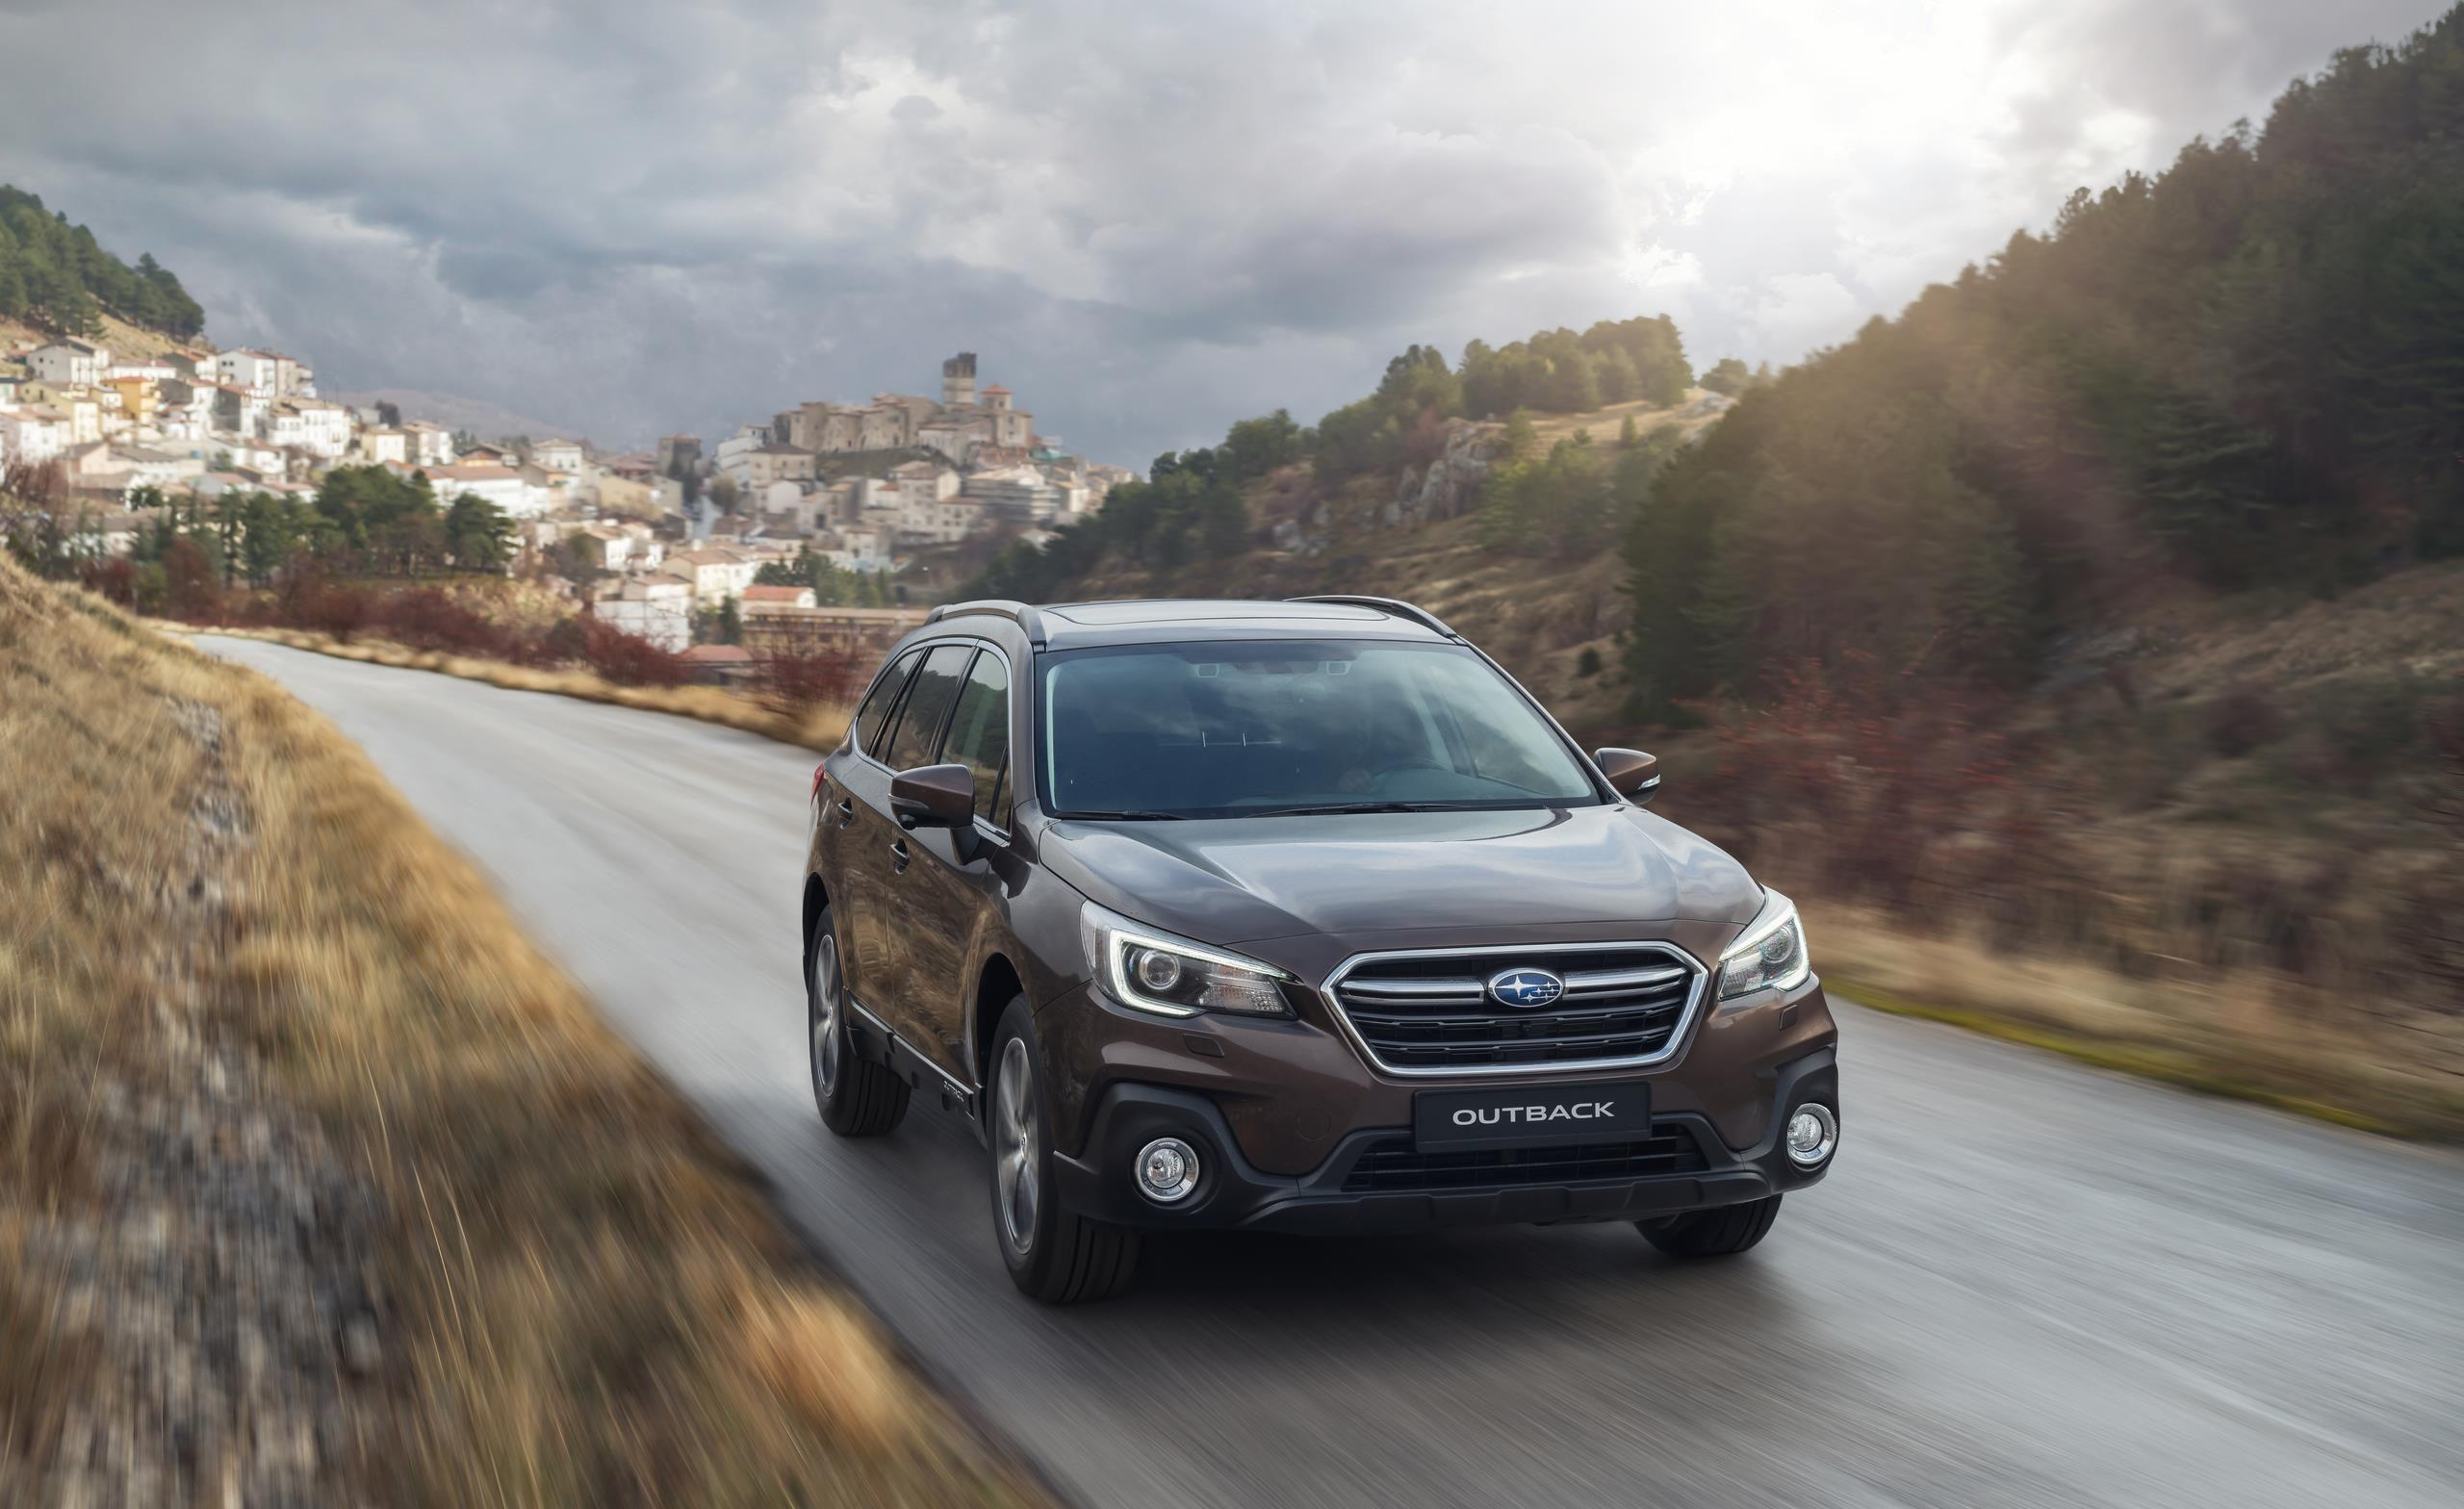 SUBARU UK ANNOUNCE SPECIFICATION AND PRICING FOR 2018 OUTBACK